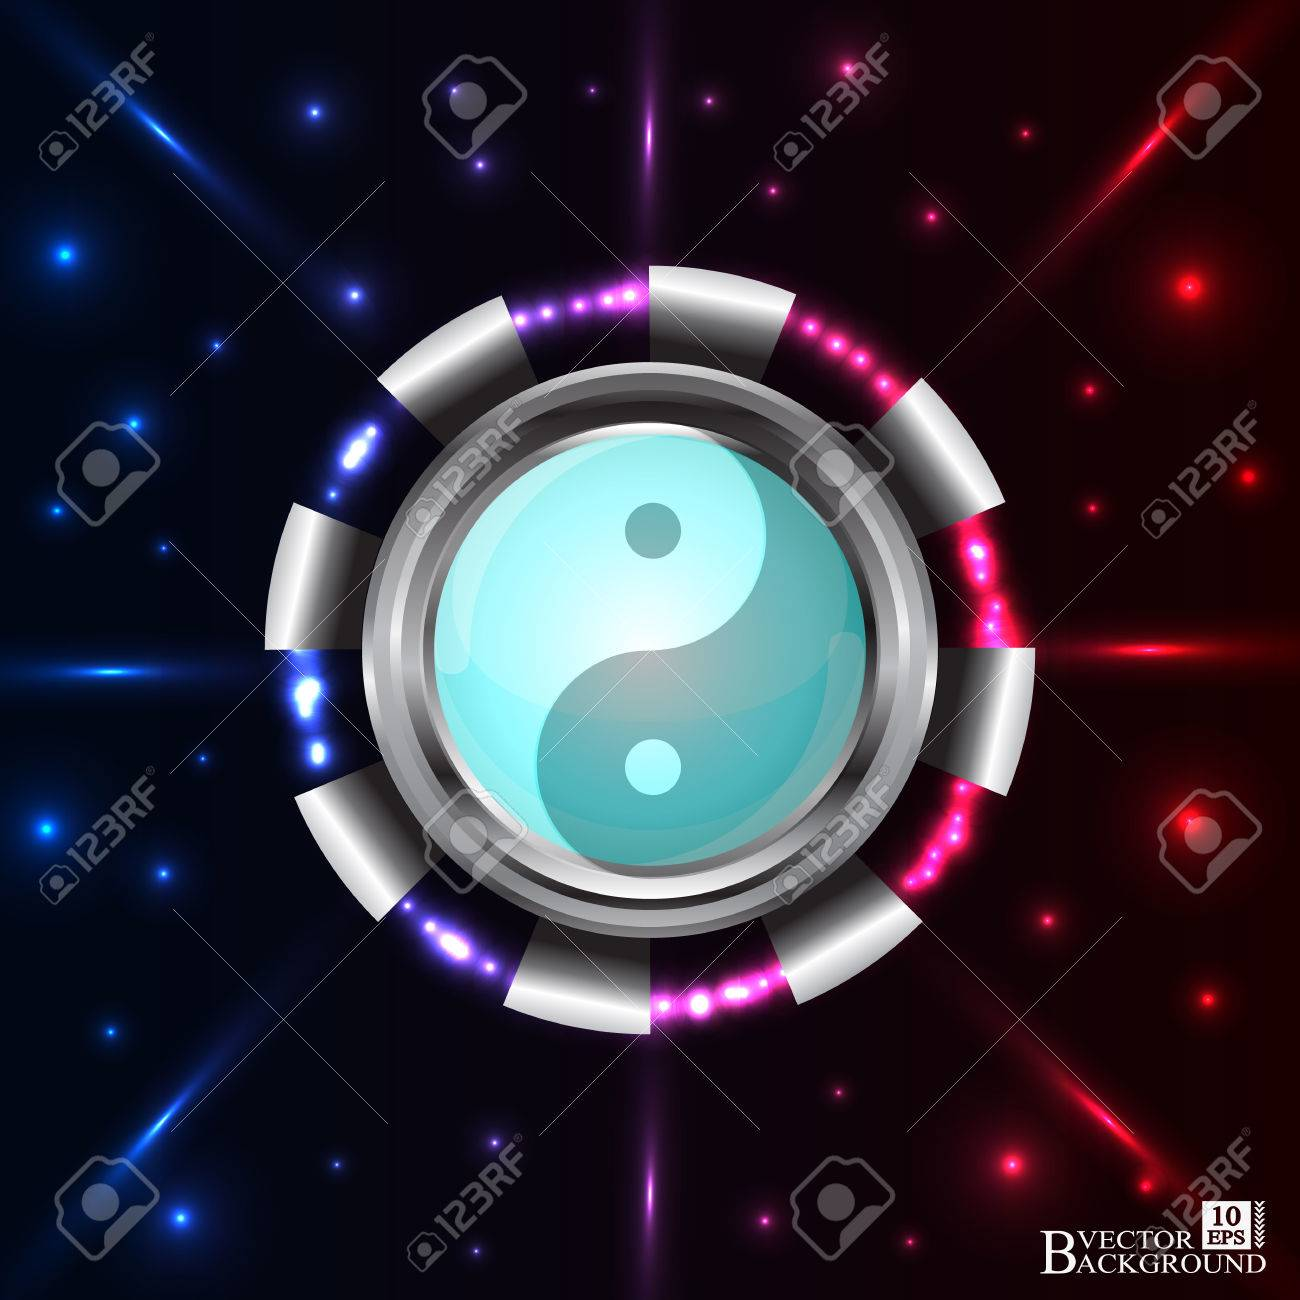 Abstract Technology Background With Yin And Yang Symbols For